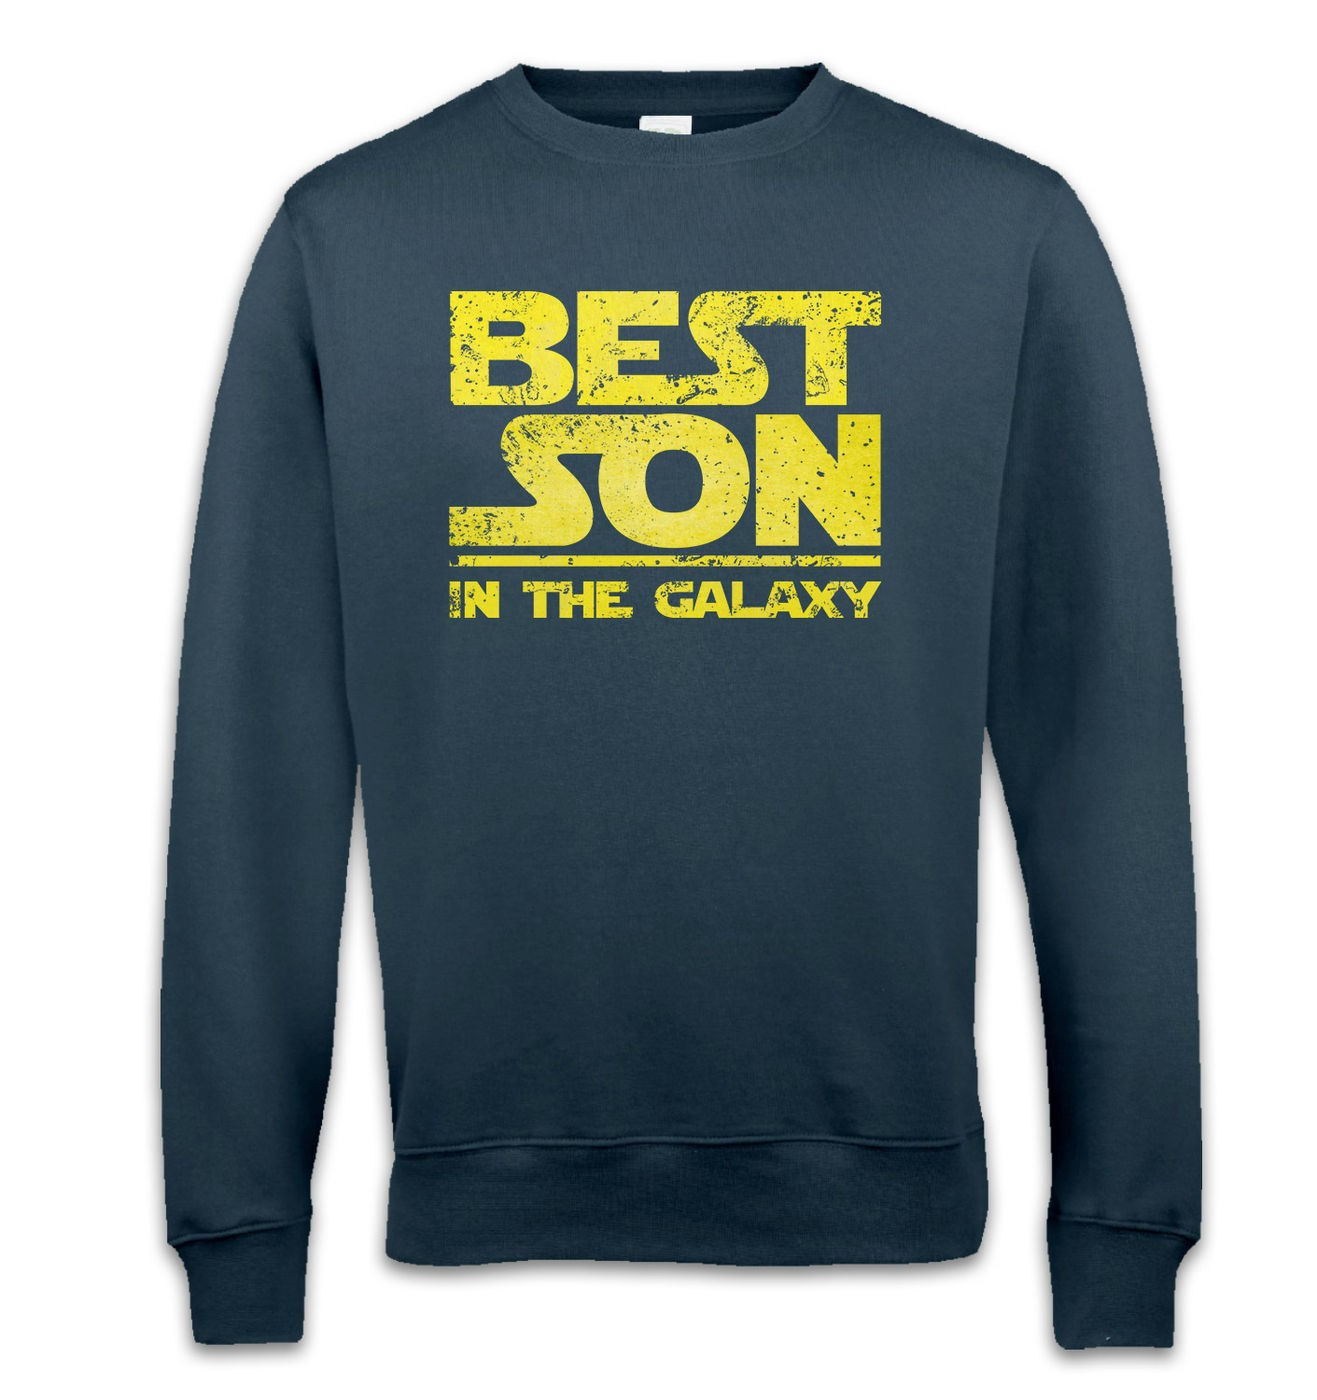 Best Son In The Galaxy adult sweatshirt by Something Geeky